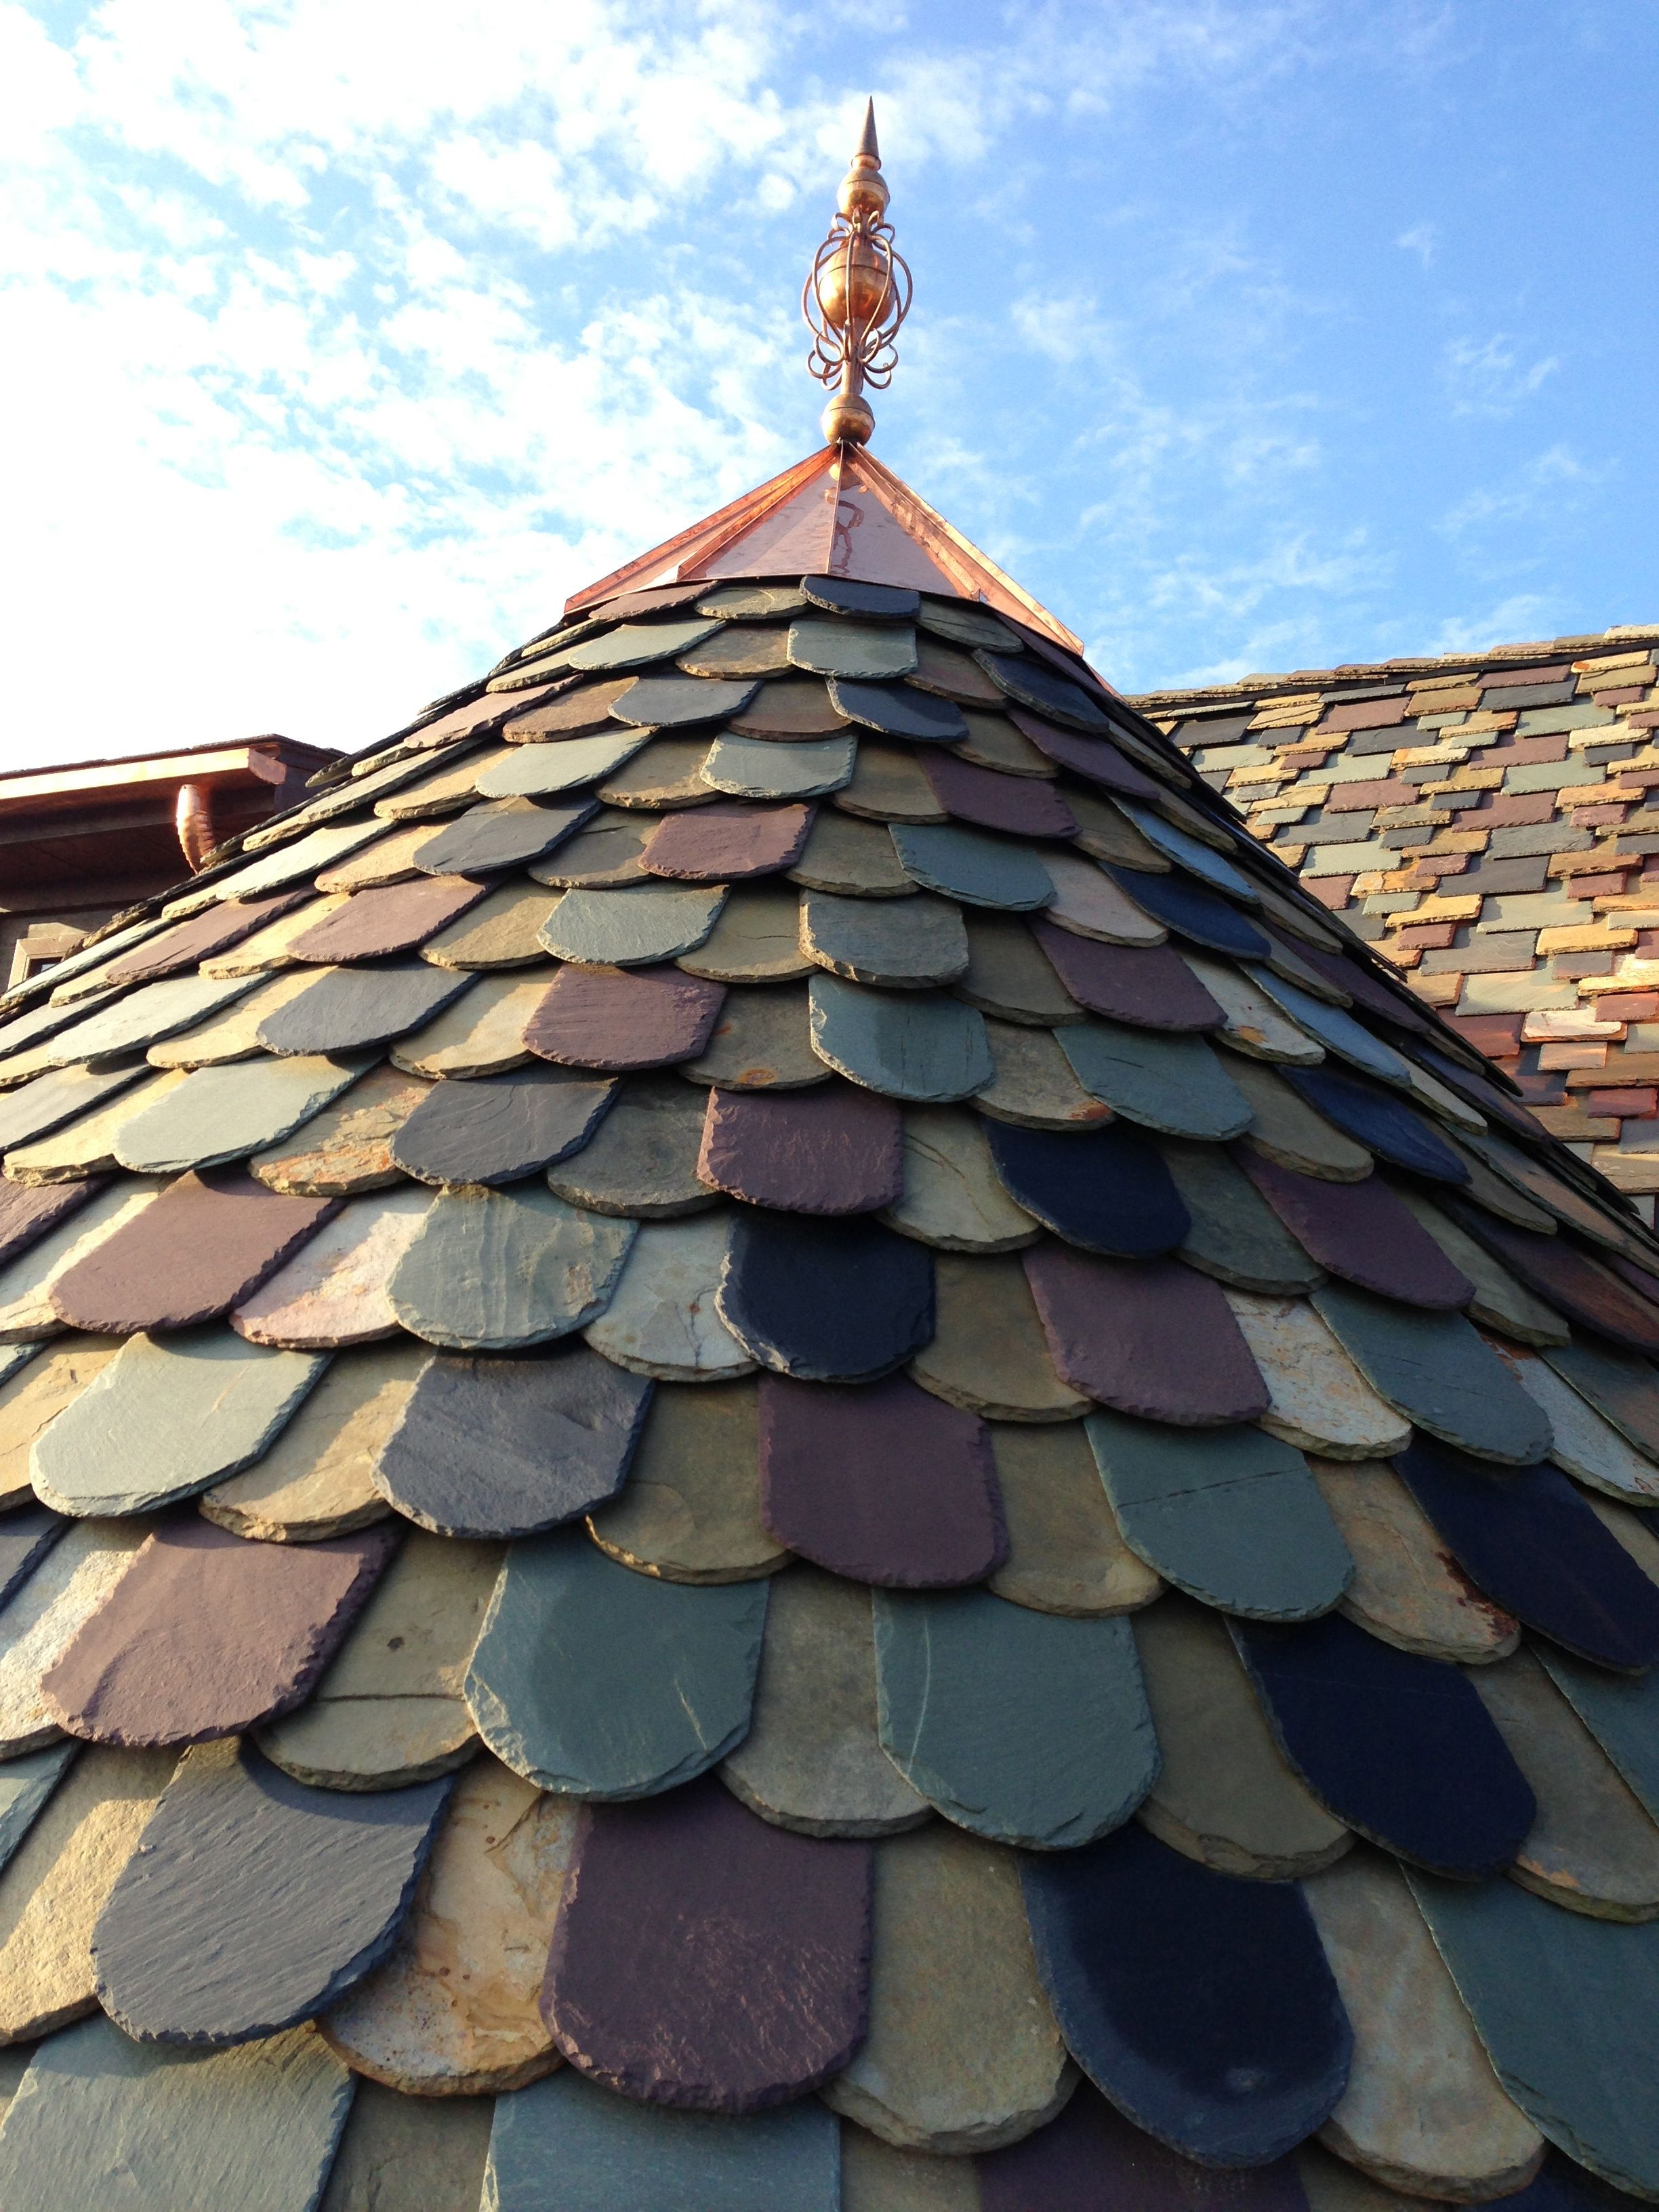 Multicoloured Slate Roof In 2020 Beautiful Roofs Roof Architecture Roof Design